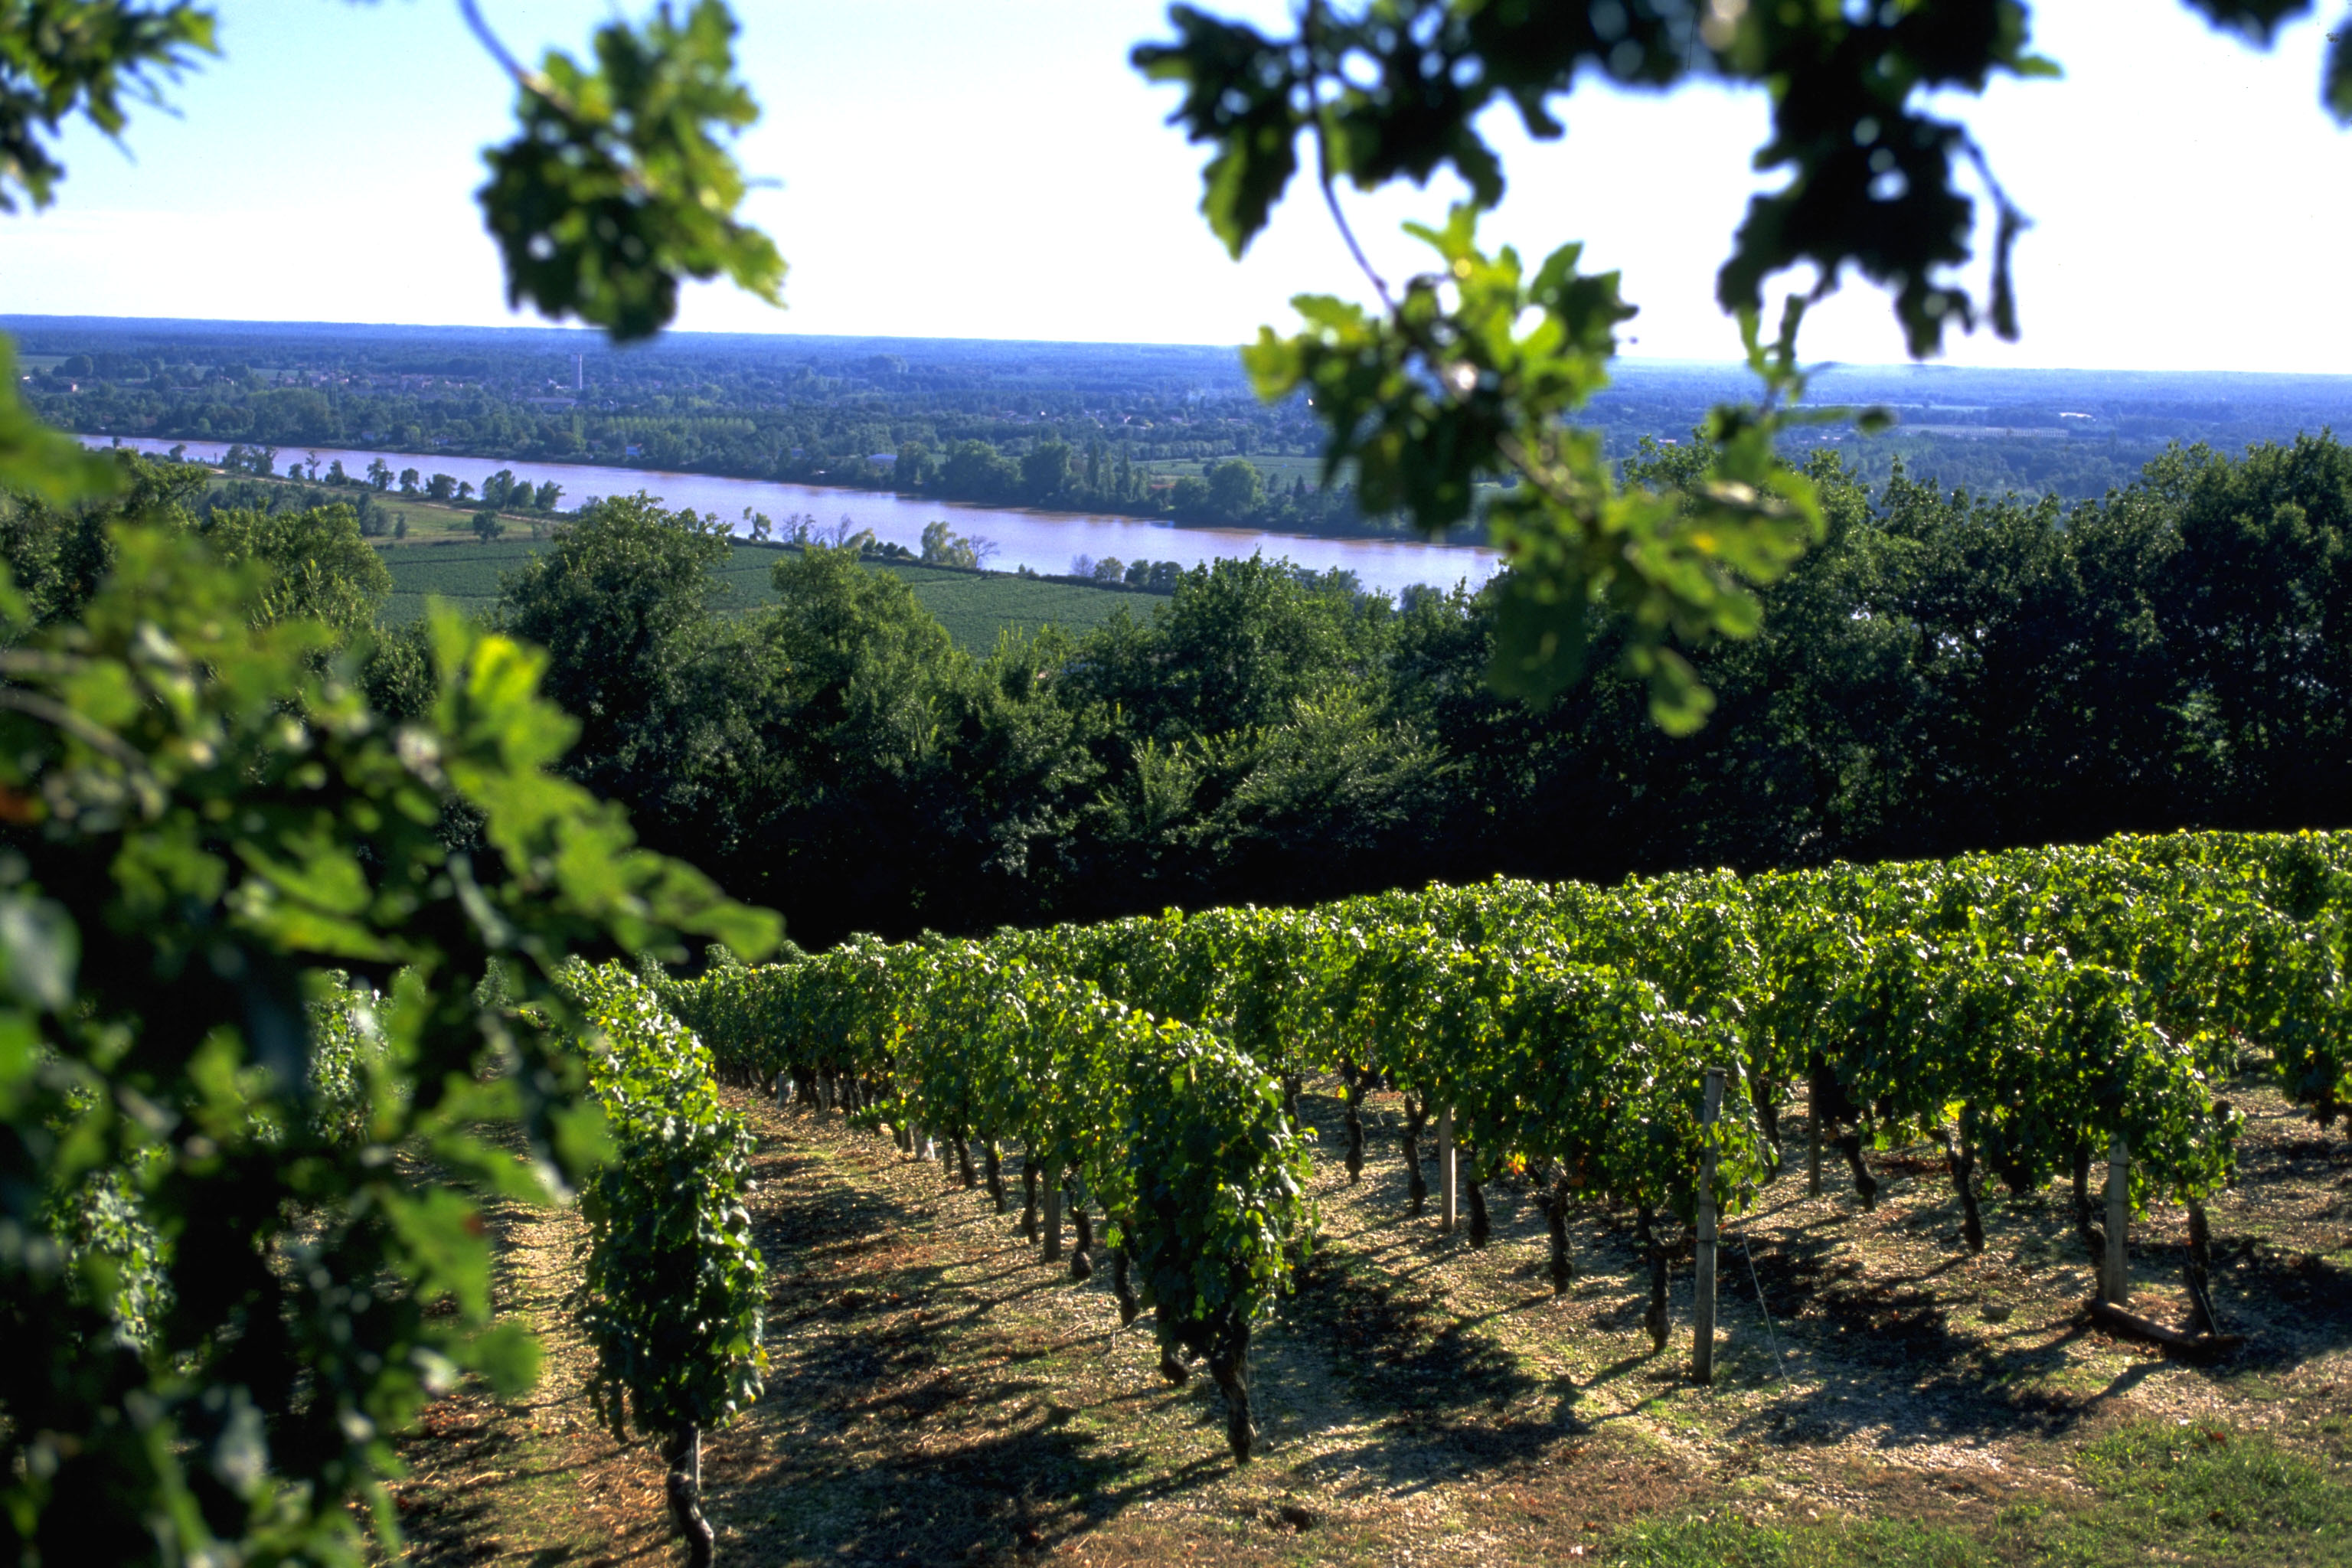 Gironde River View from Fontenille Vineyards